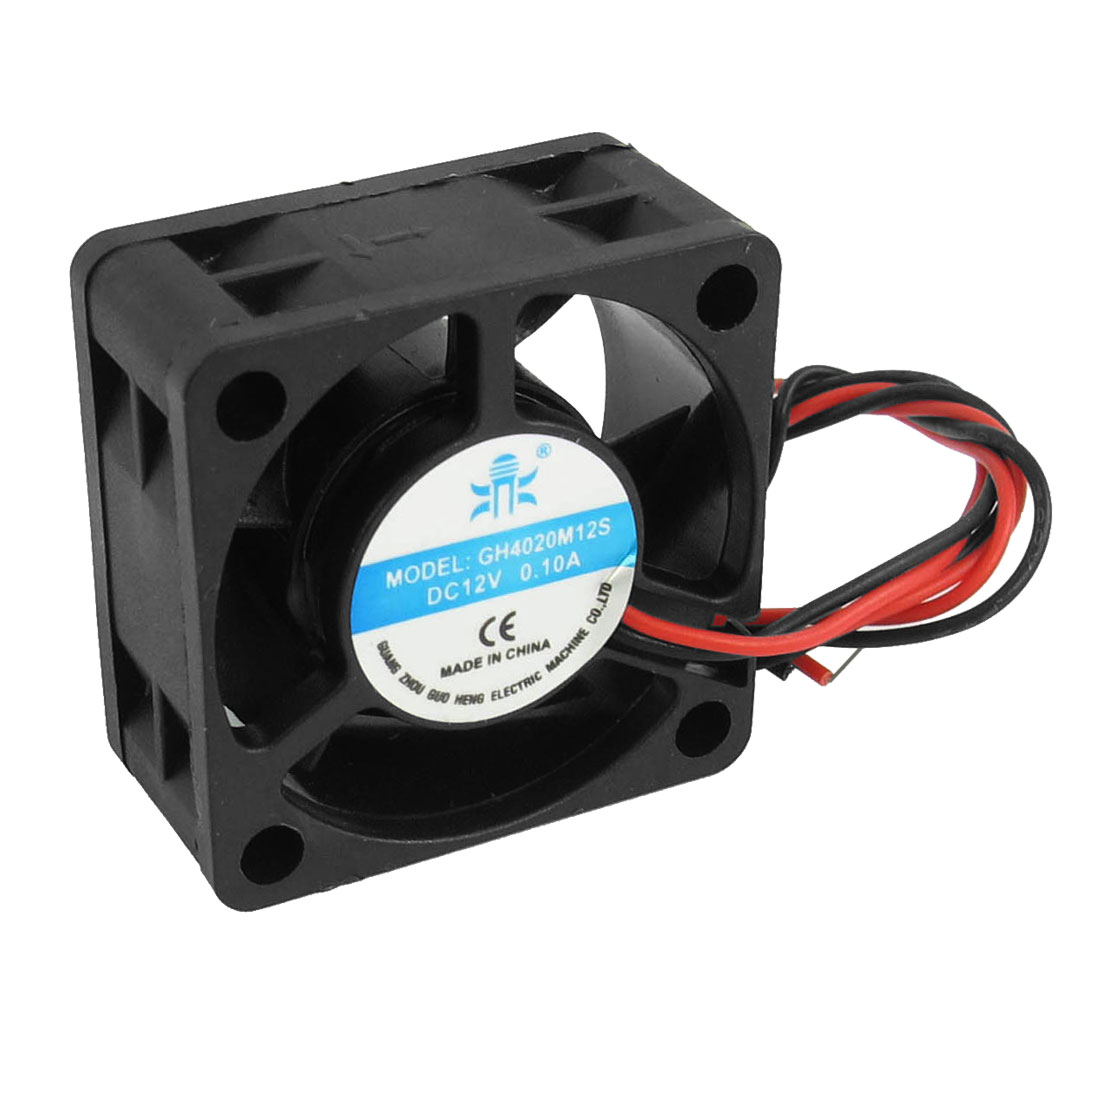 DC12V 0.1A 2-Wired Black Plastic 5-Fan Axial Fan Cooler Cooler Heatsink 40mm x 20mm